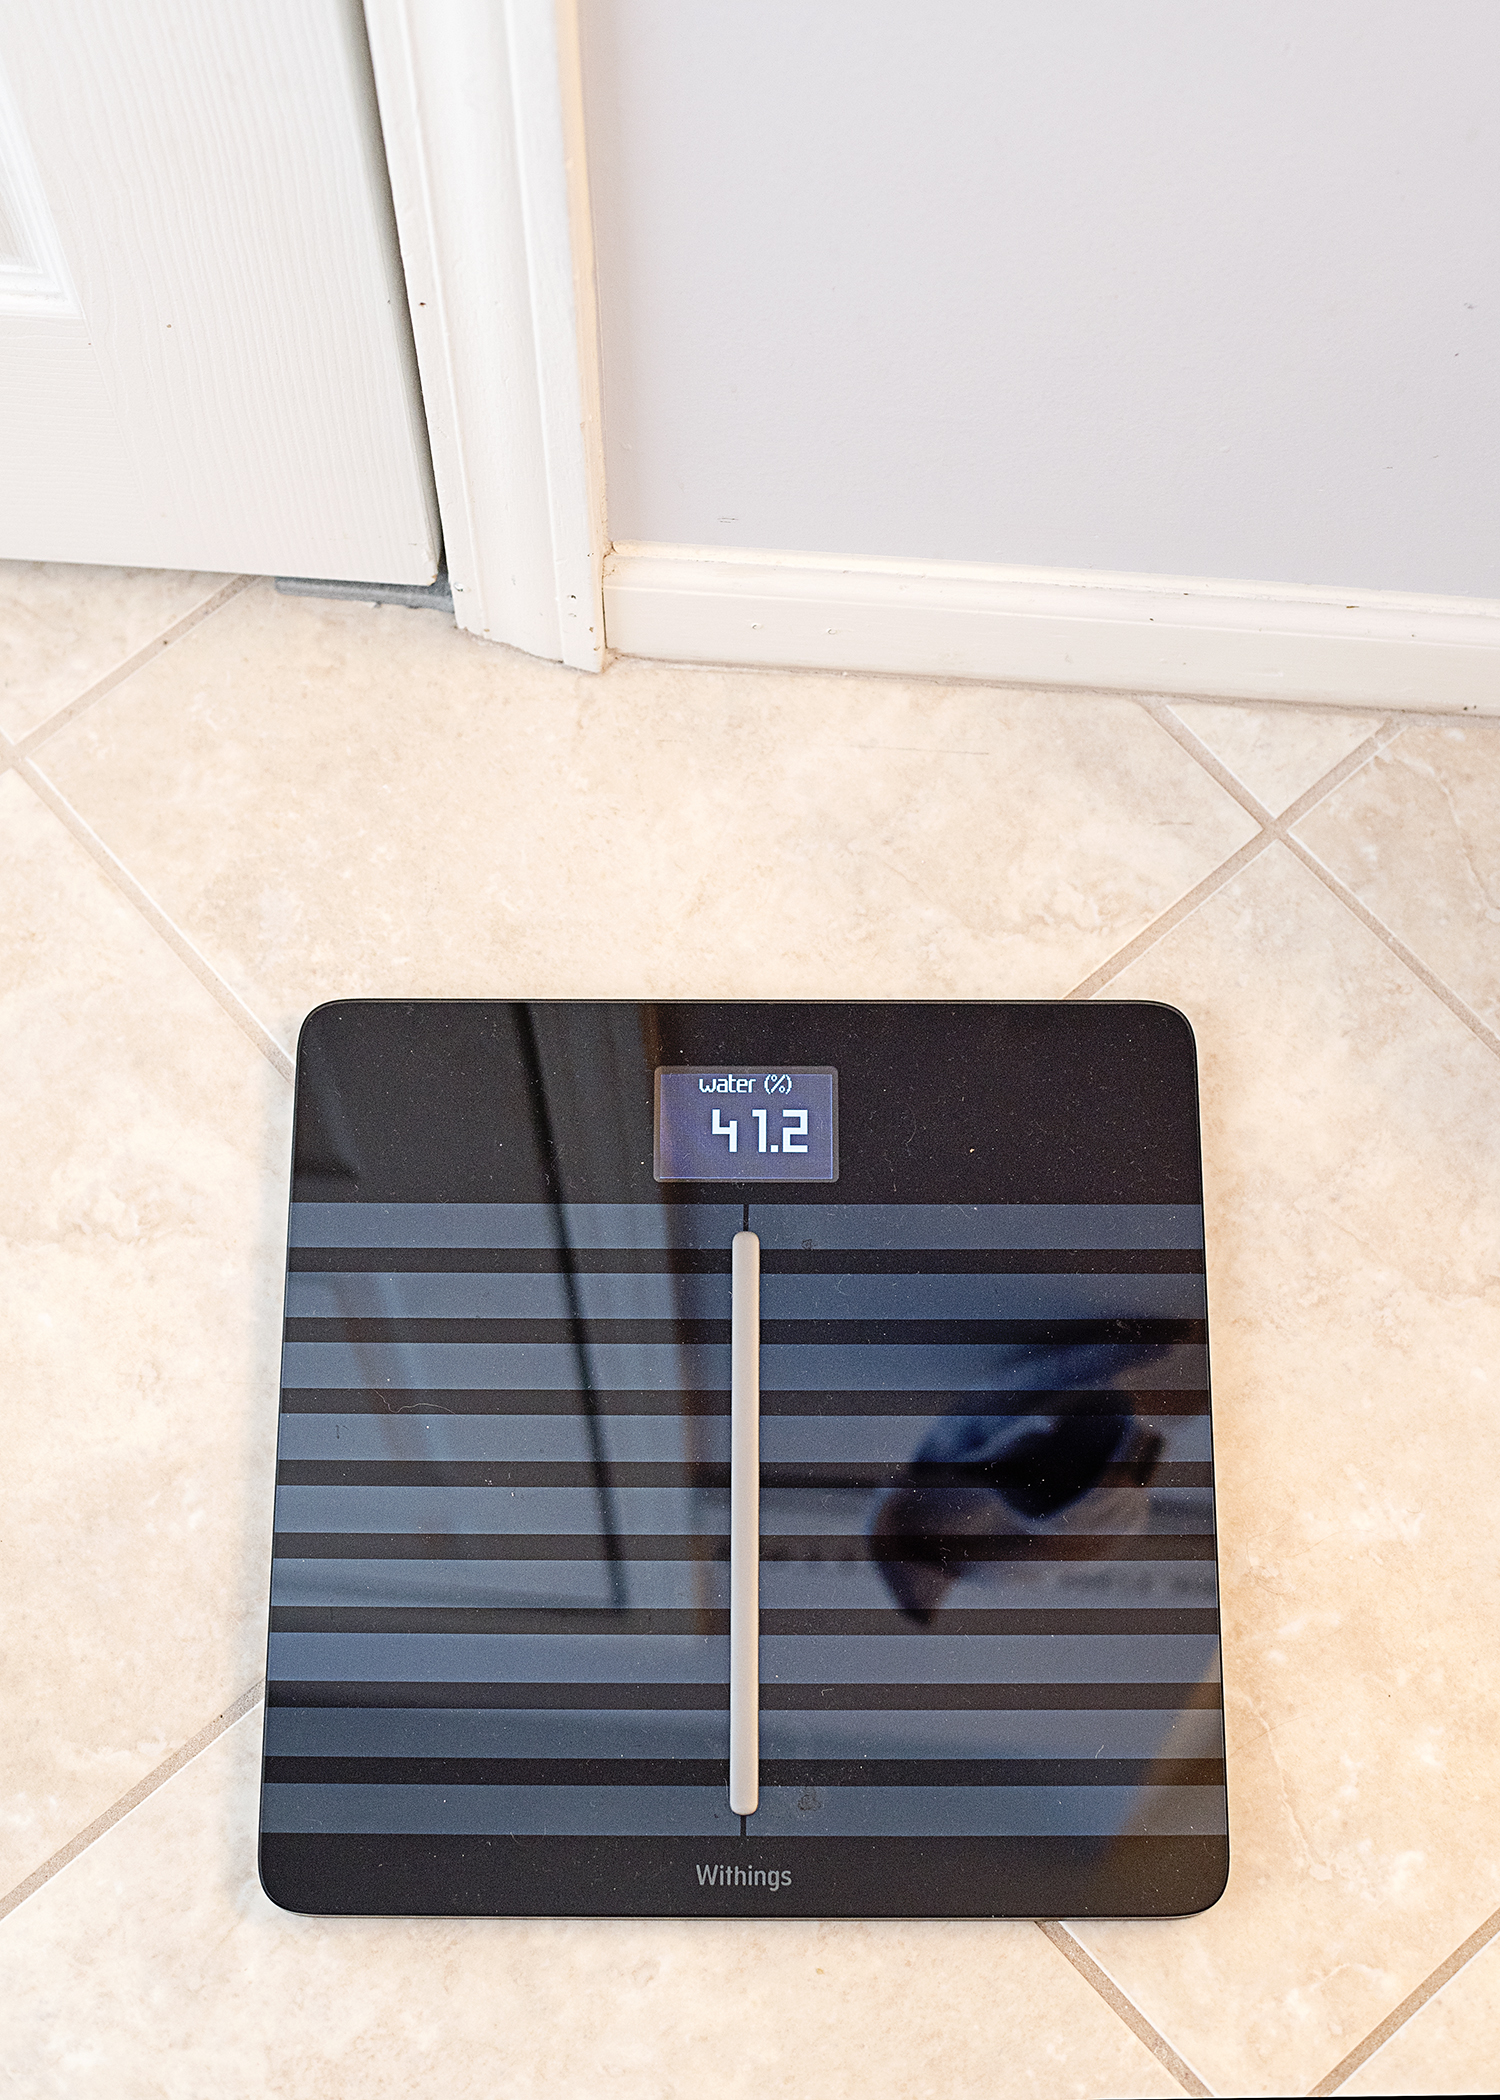 A Weight Scale That Does More For Your Health - Withings Body Cardio